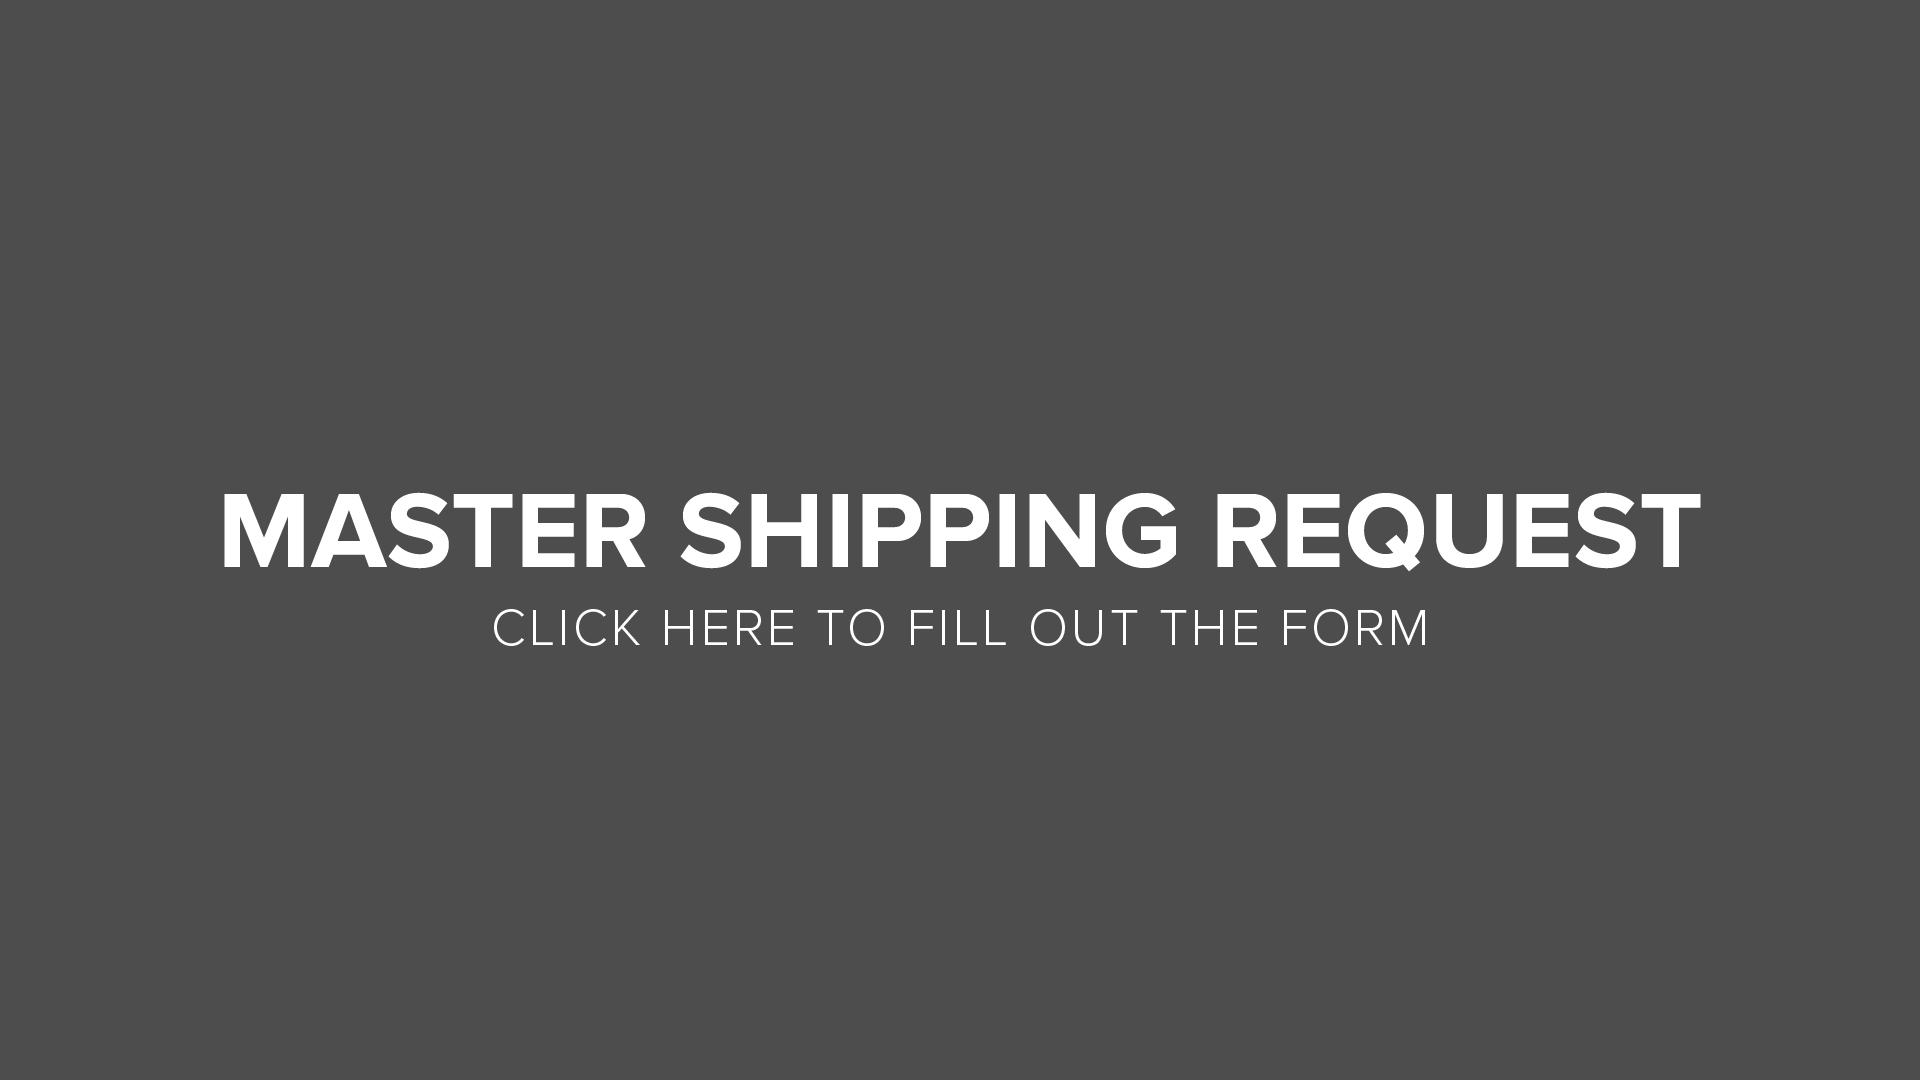 Announcement Buttons_Master Shipping Request Button.png